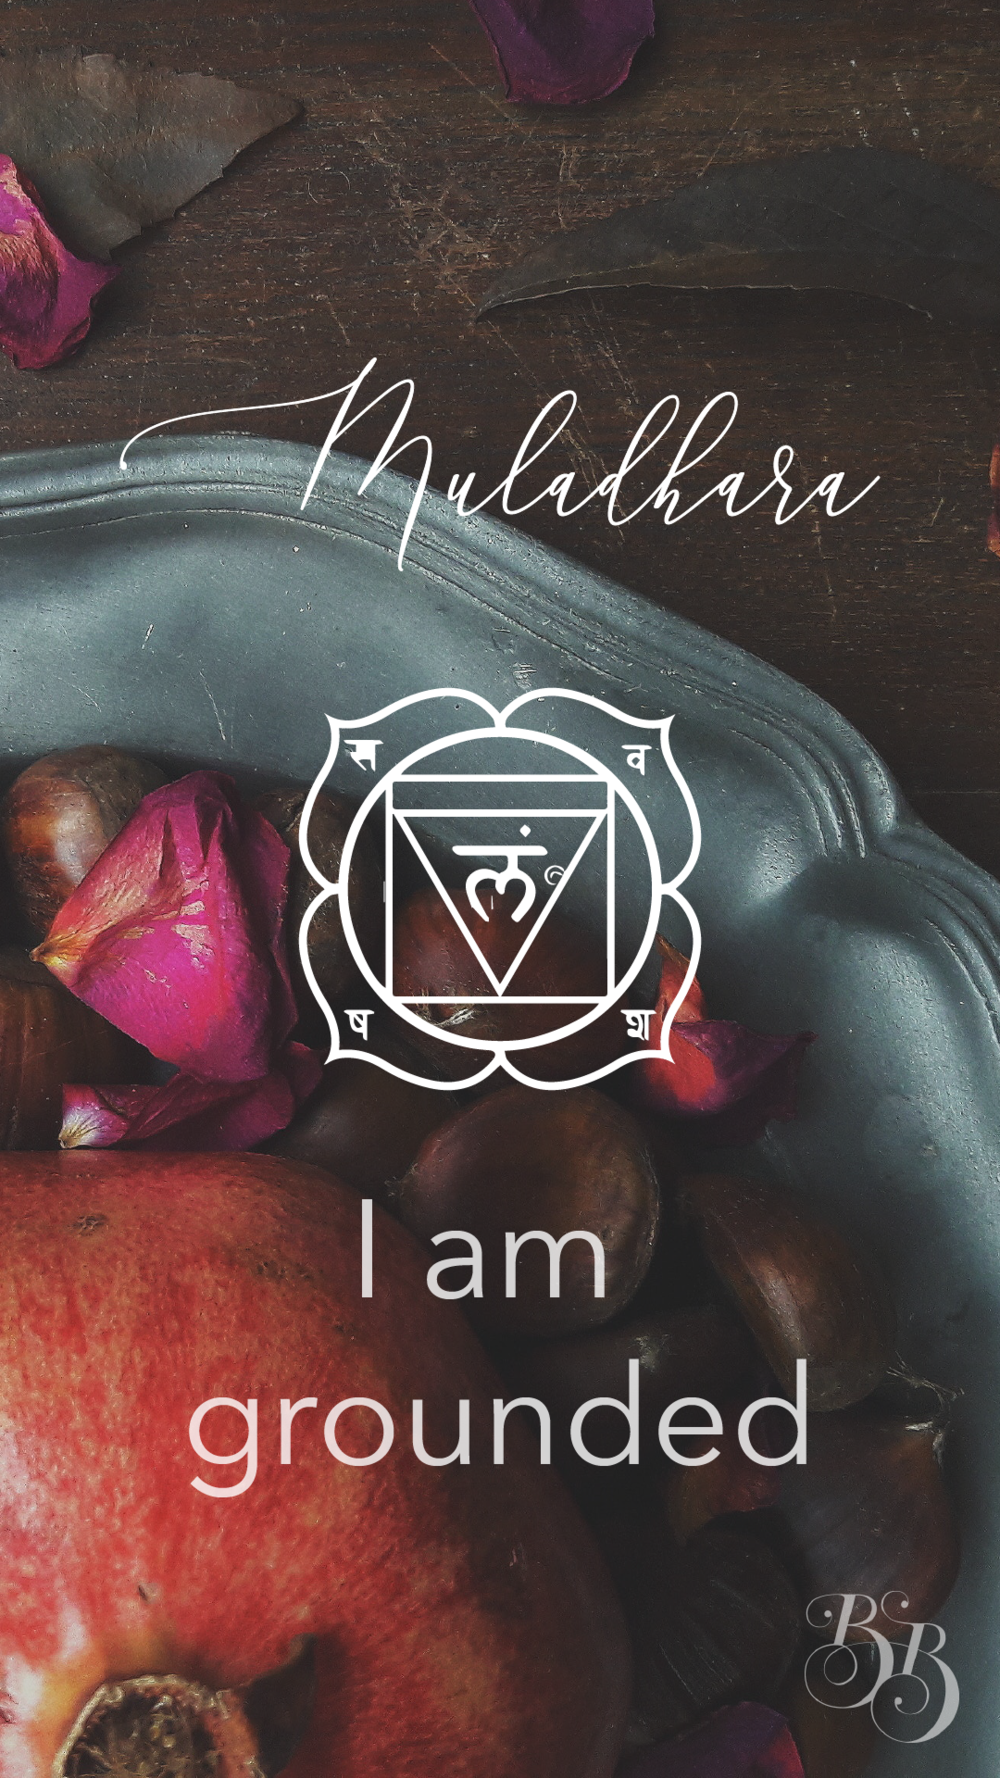 BethanyBYogaLifestyle - wallpapers - chakras1.png